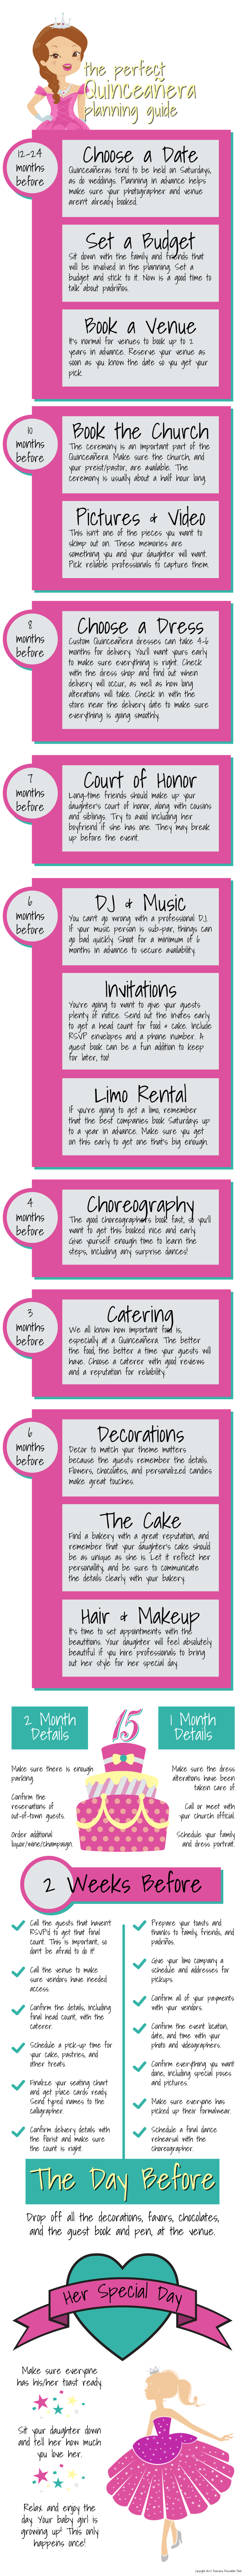 This infographic will help you plan the perfect quinceanera.